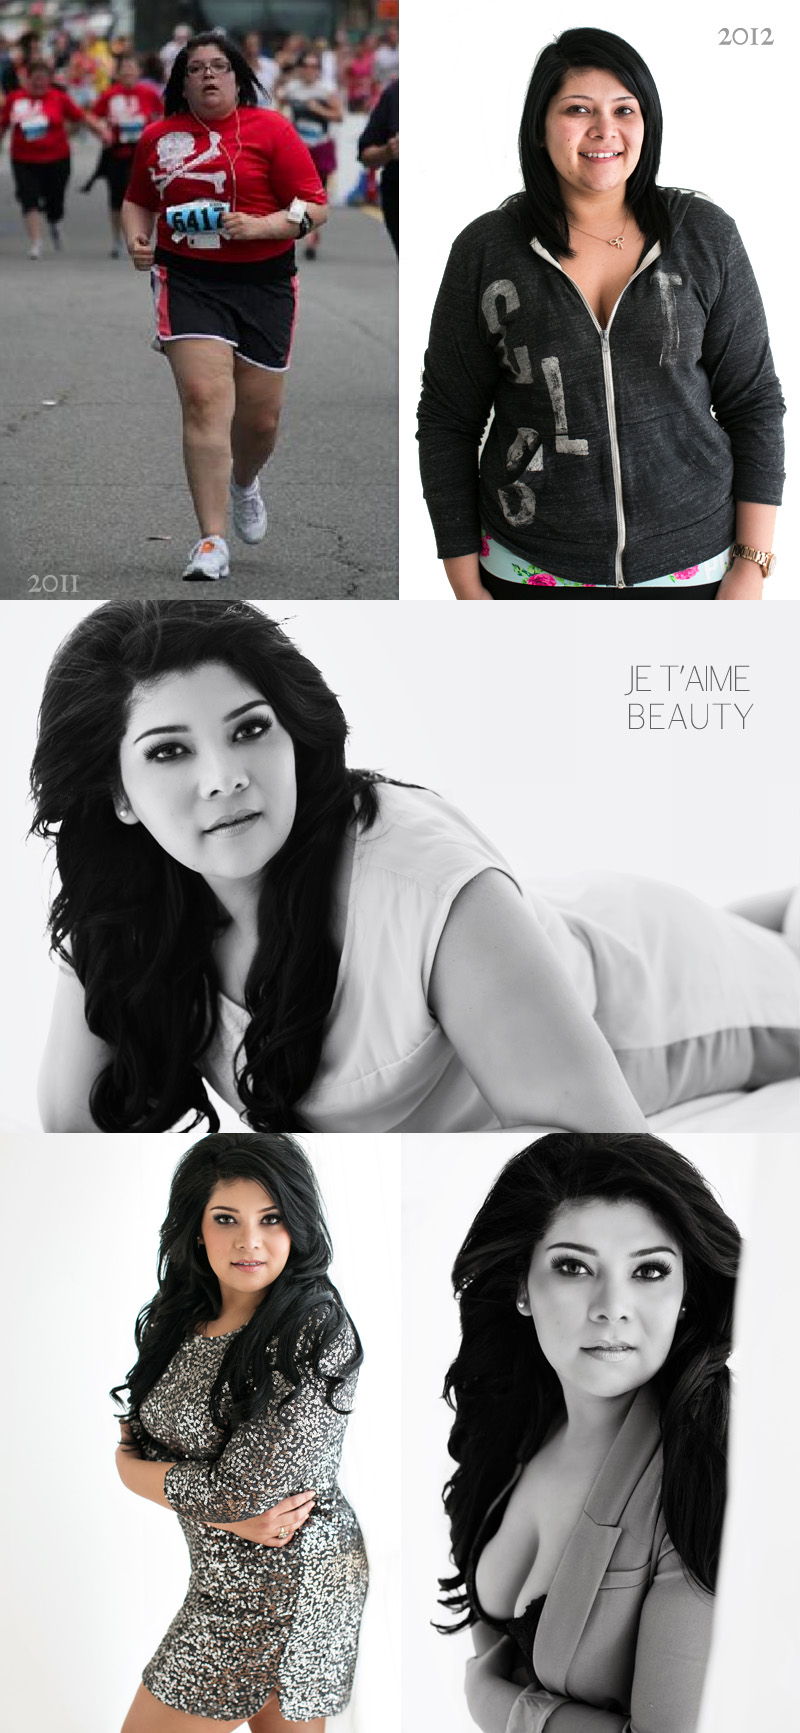 je t'aime beauty, before and after, glamour photography, orange county beauty photographer, orange county glamour photographer, kim le photography